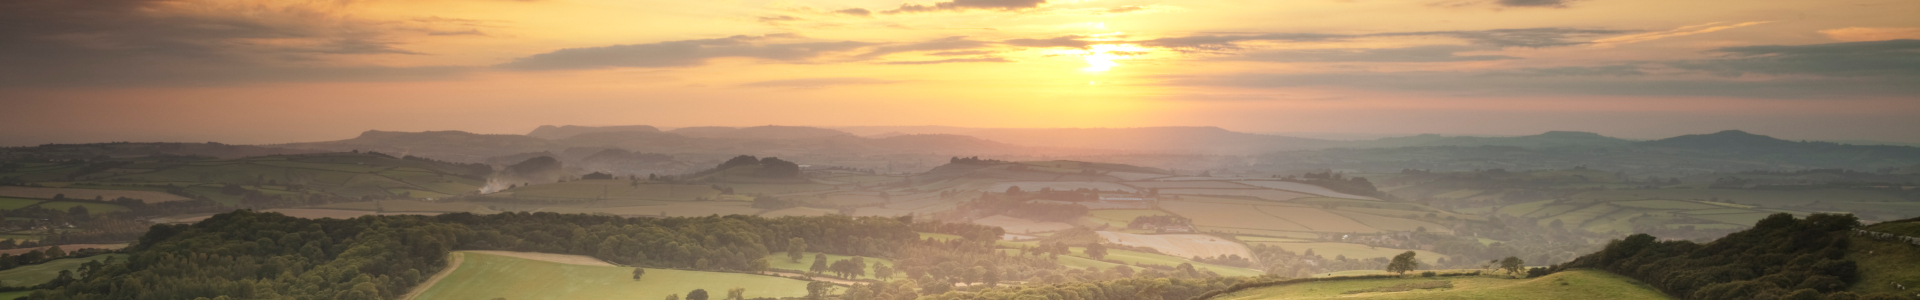 View west from Eggardon Hill in Dorset, at sunset